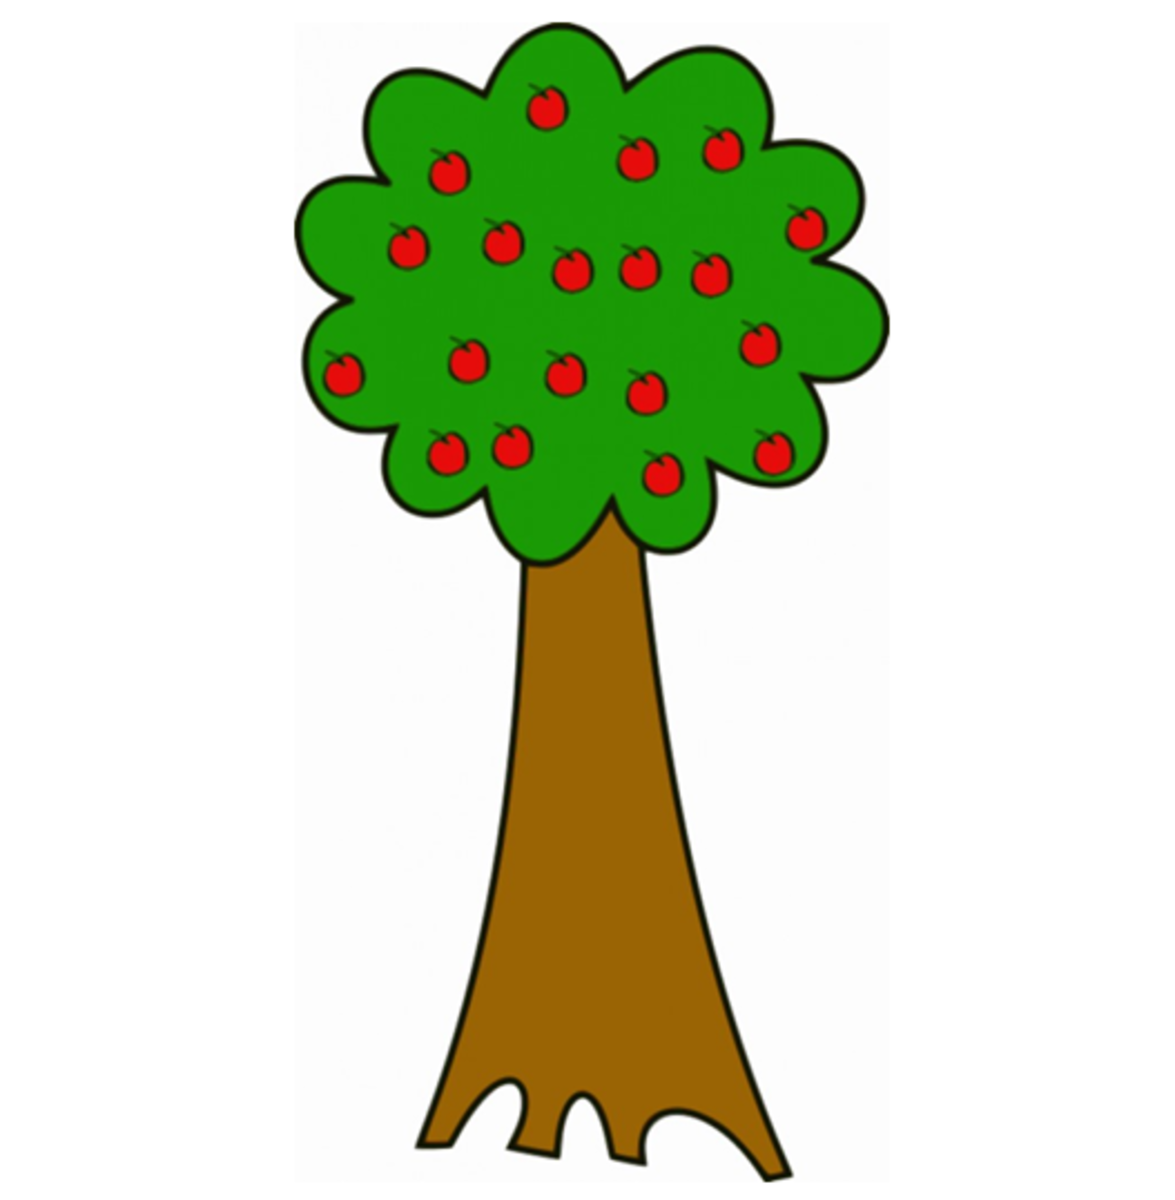 Tall Apple Tree Image